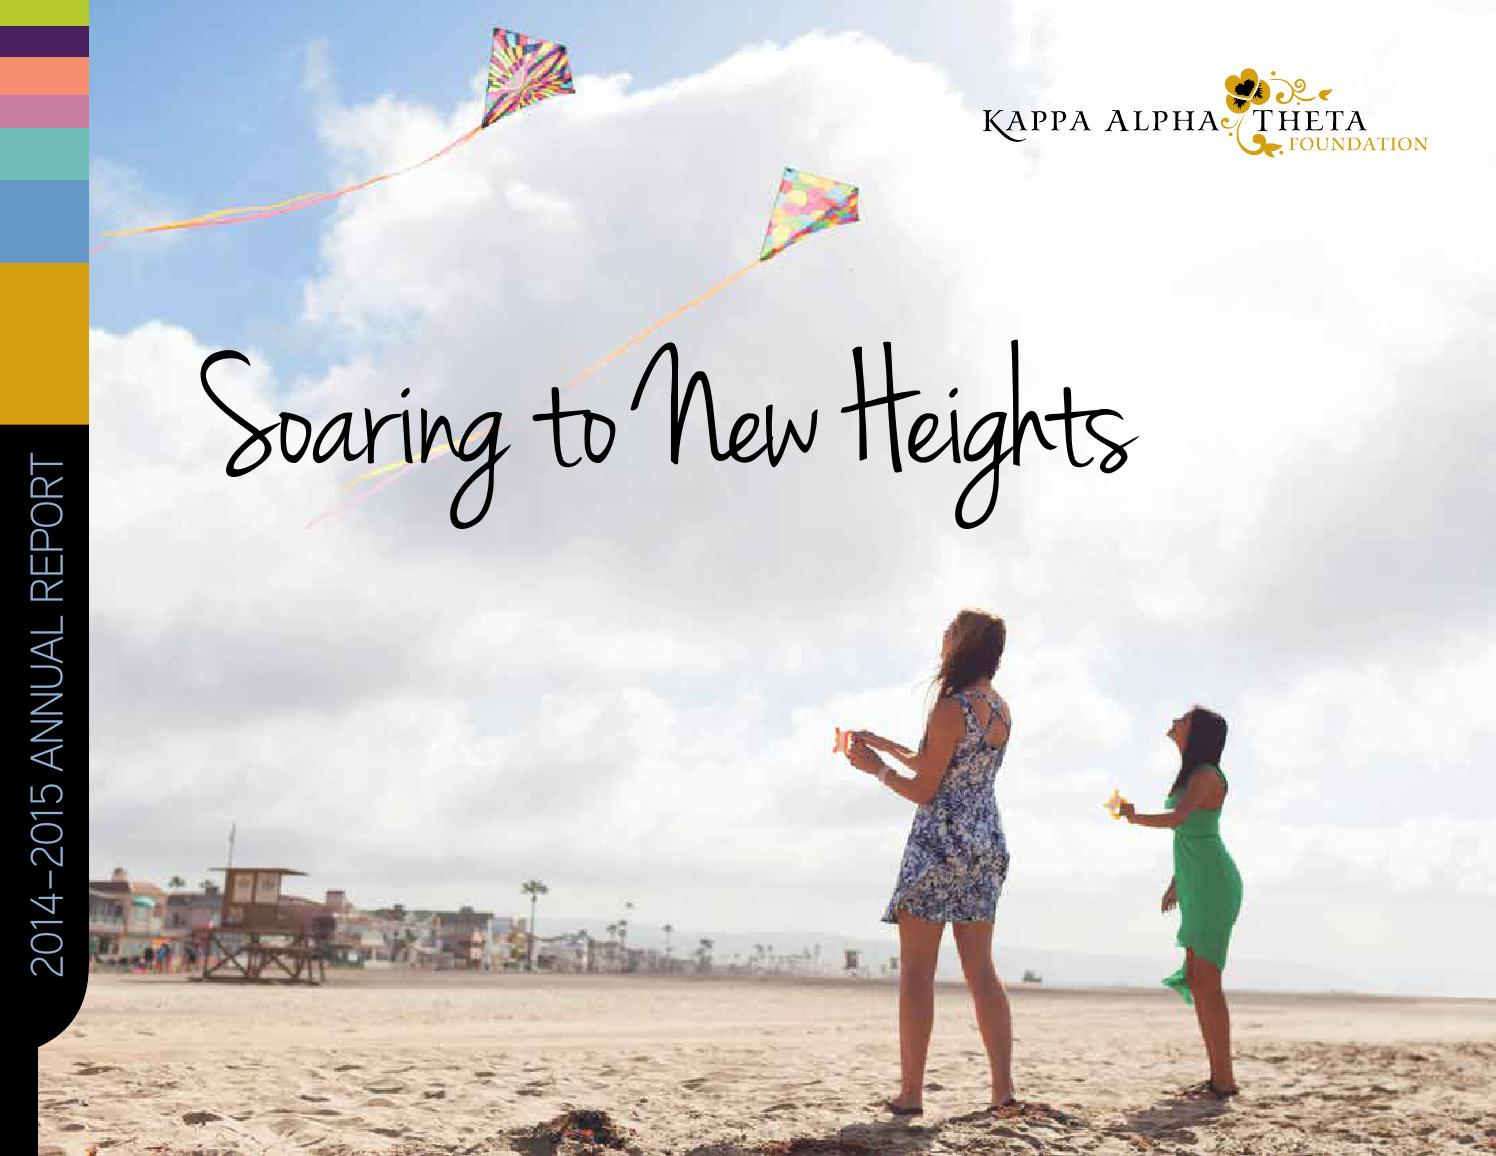 Theta Foundation's 2014-2015 Annual Report by Kappa Alpha